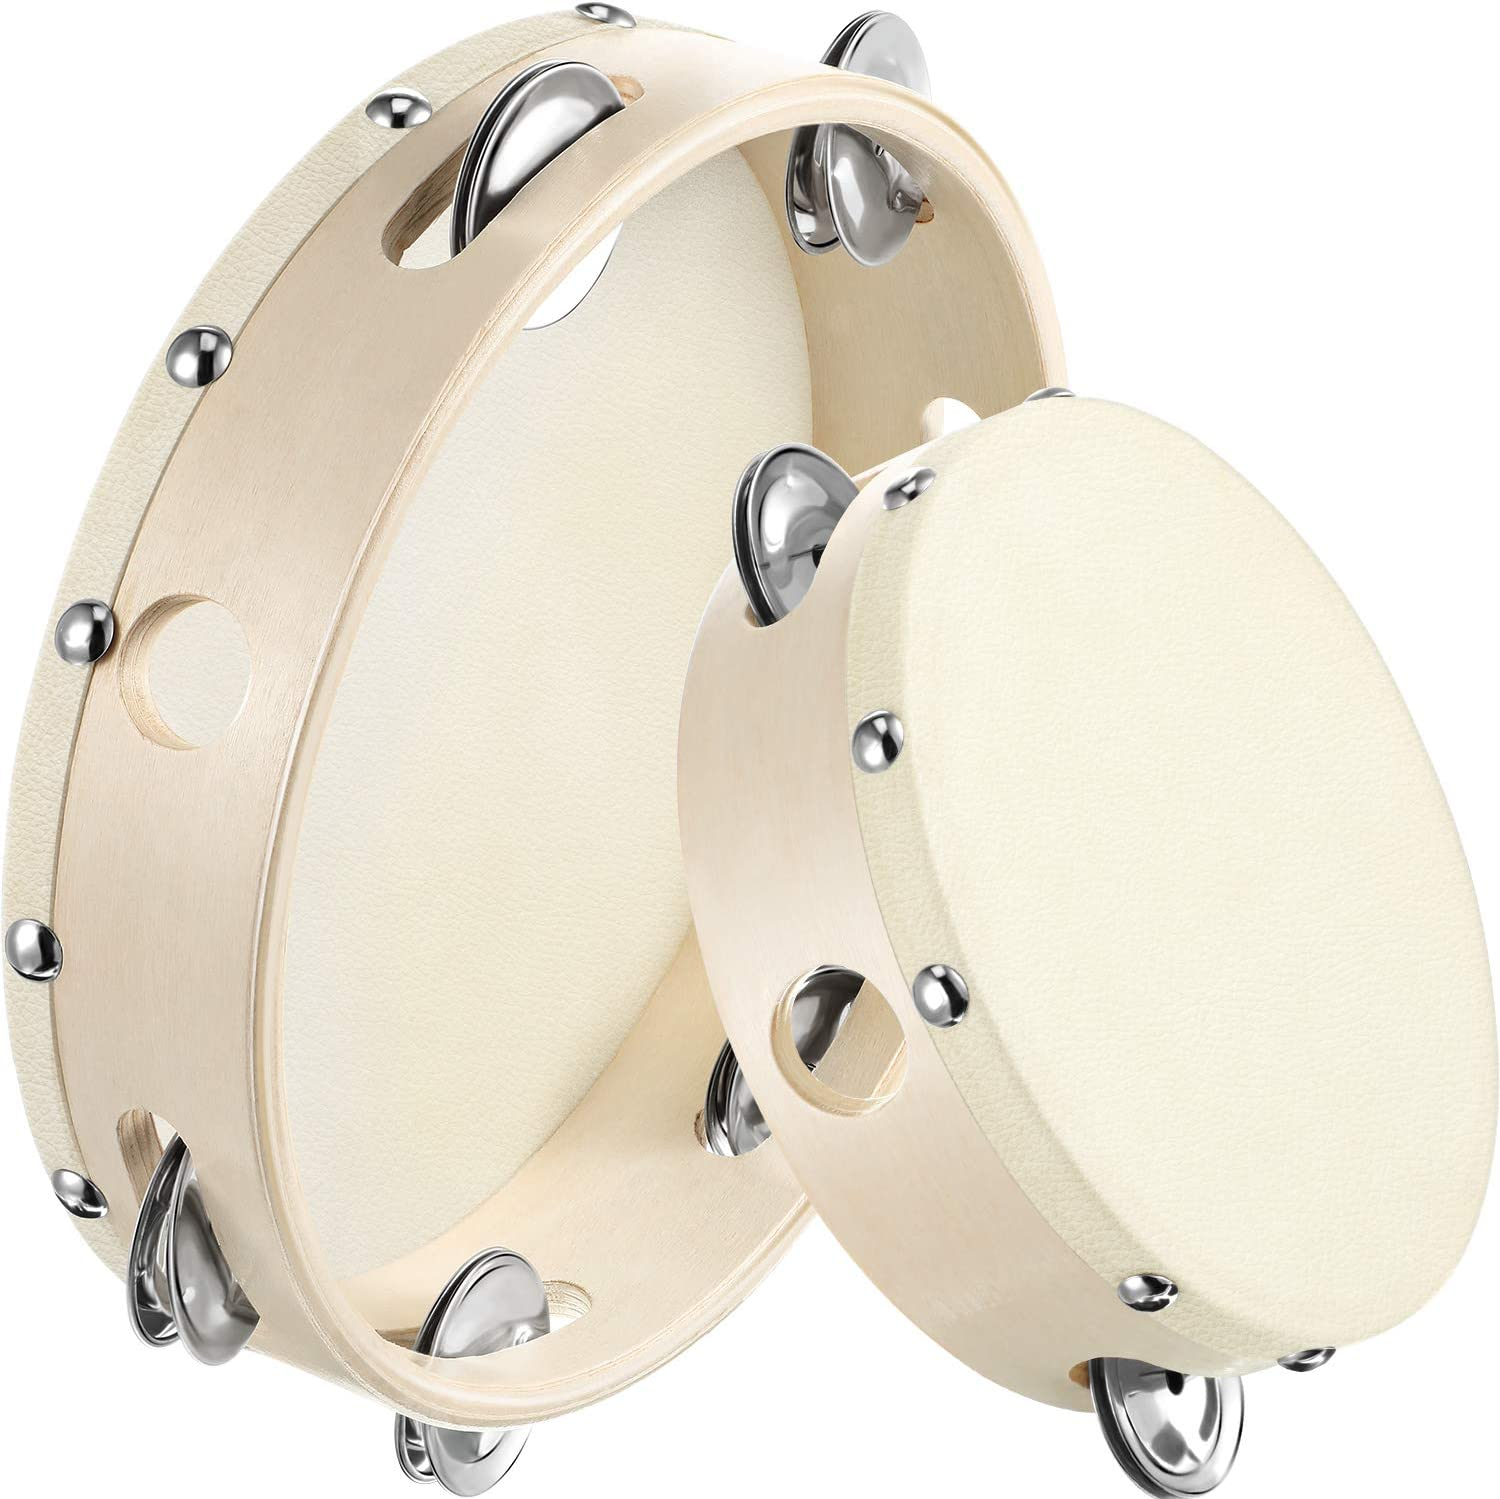 2 Pieces(6 Inch and 8 Inch) Wood Handheld Tambourine, Tambourines with Jingel Bells 71x9CjVGkKL